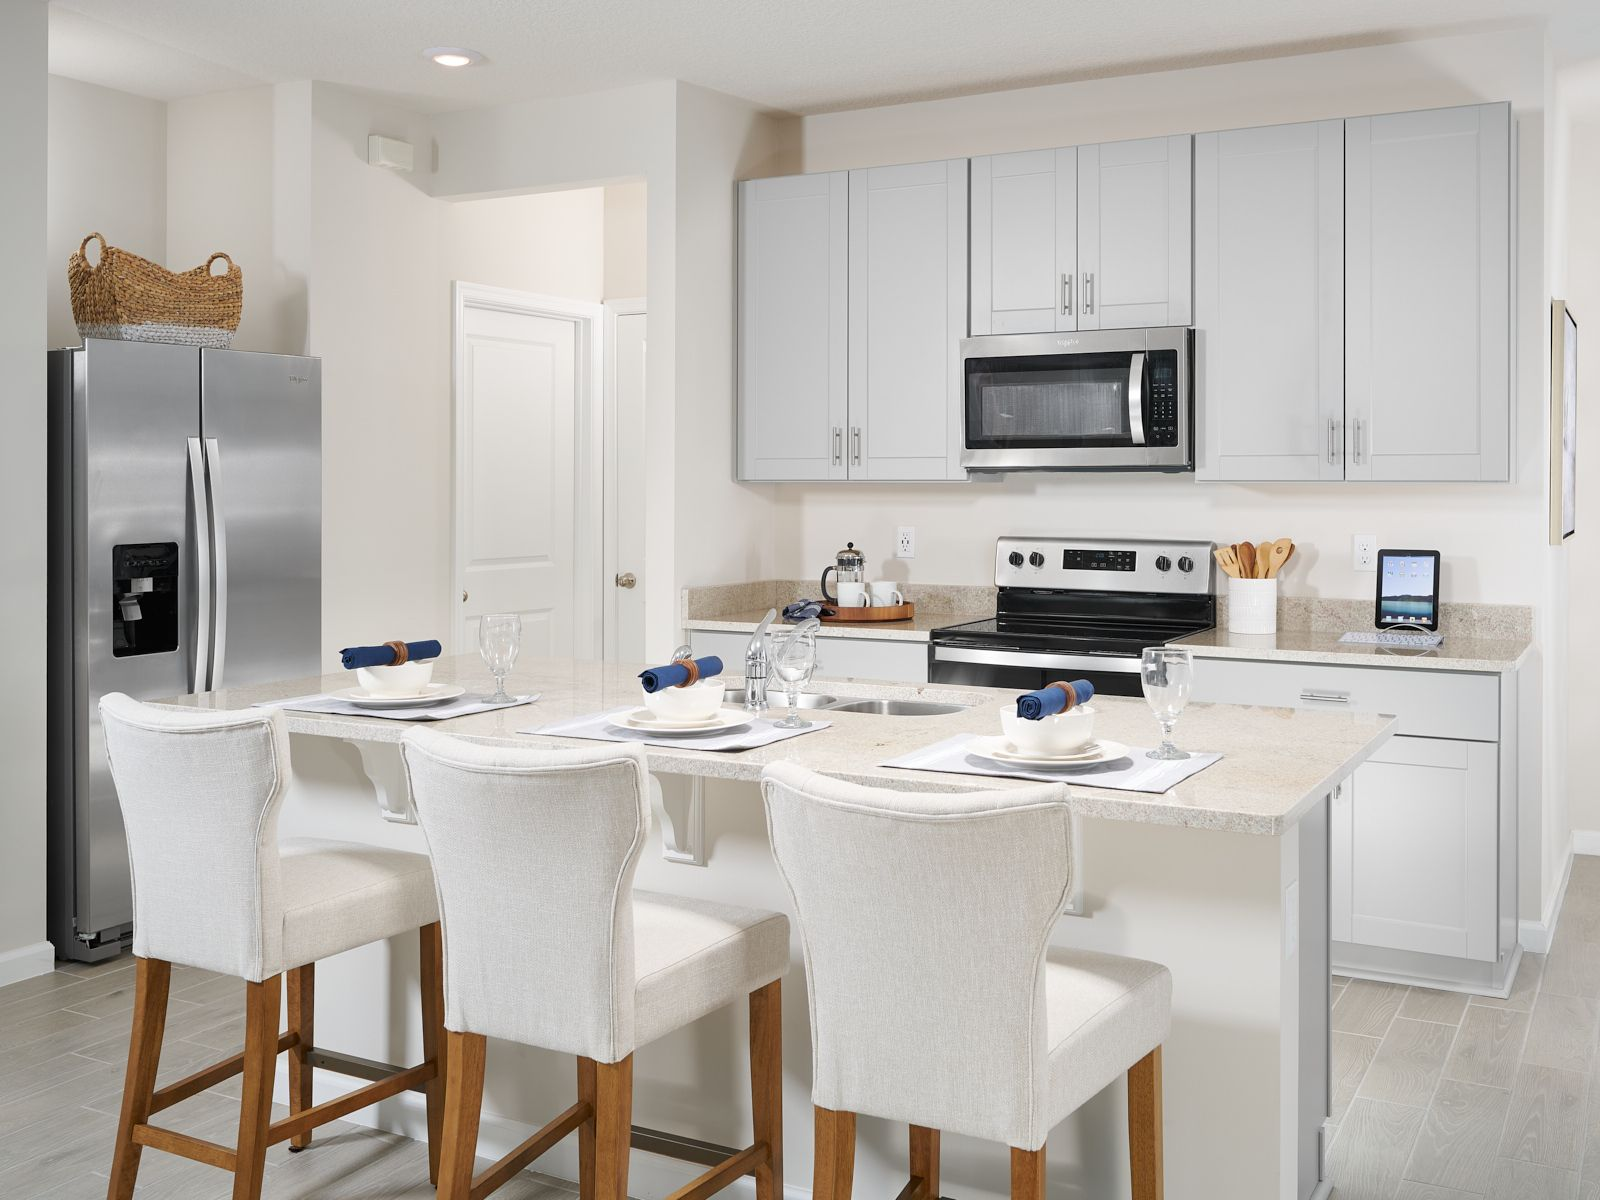 Kitchen featured in the Copper End By Meritage Homes in Martin-St. Lucie-Okeechobee Counties, FL